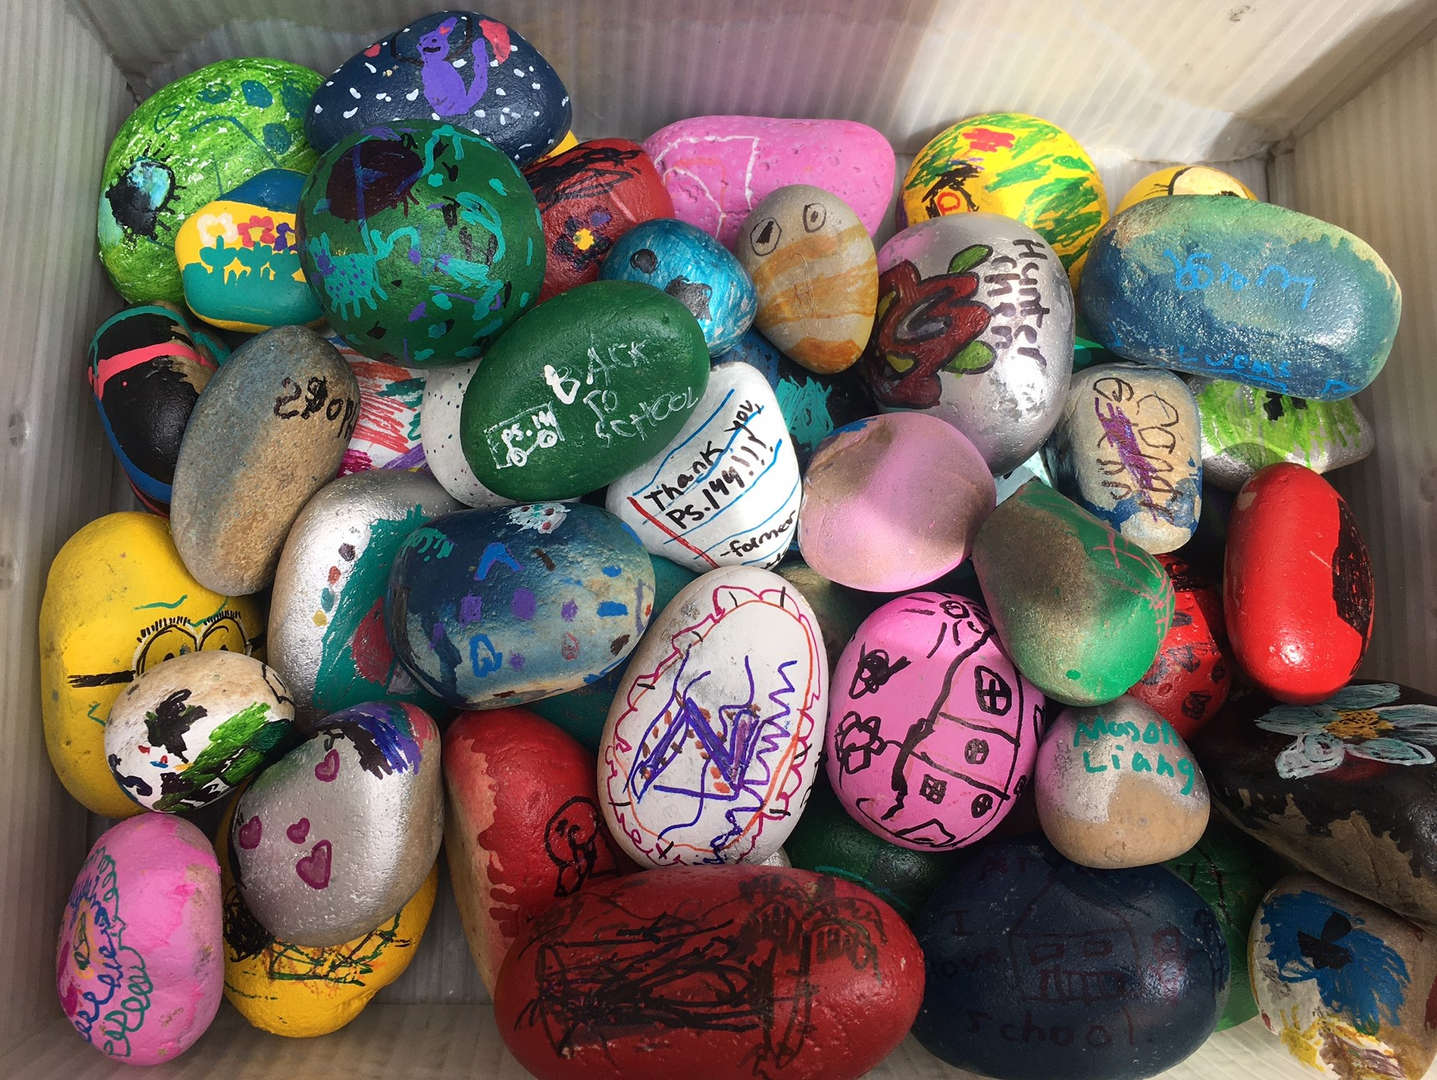 Rocks that are painted.